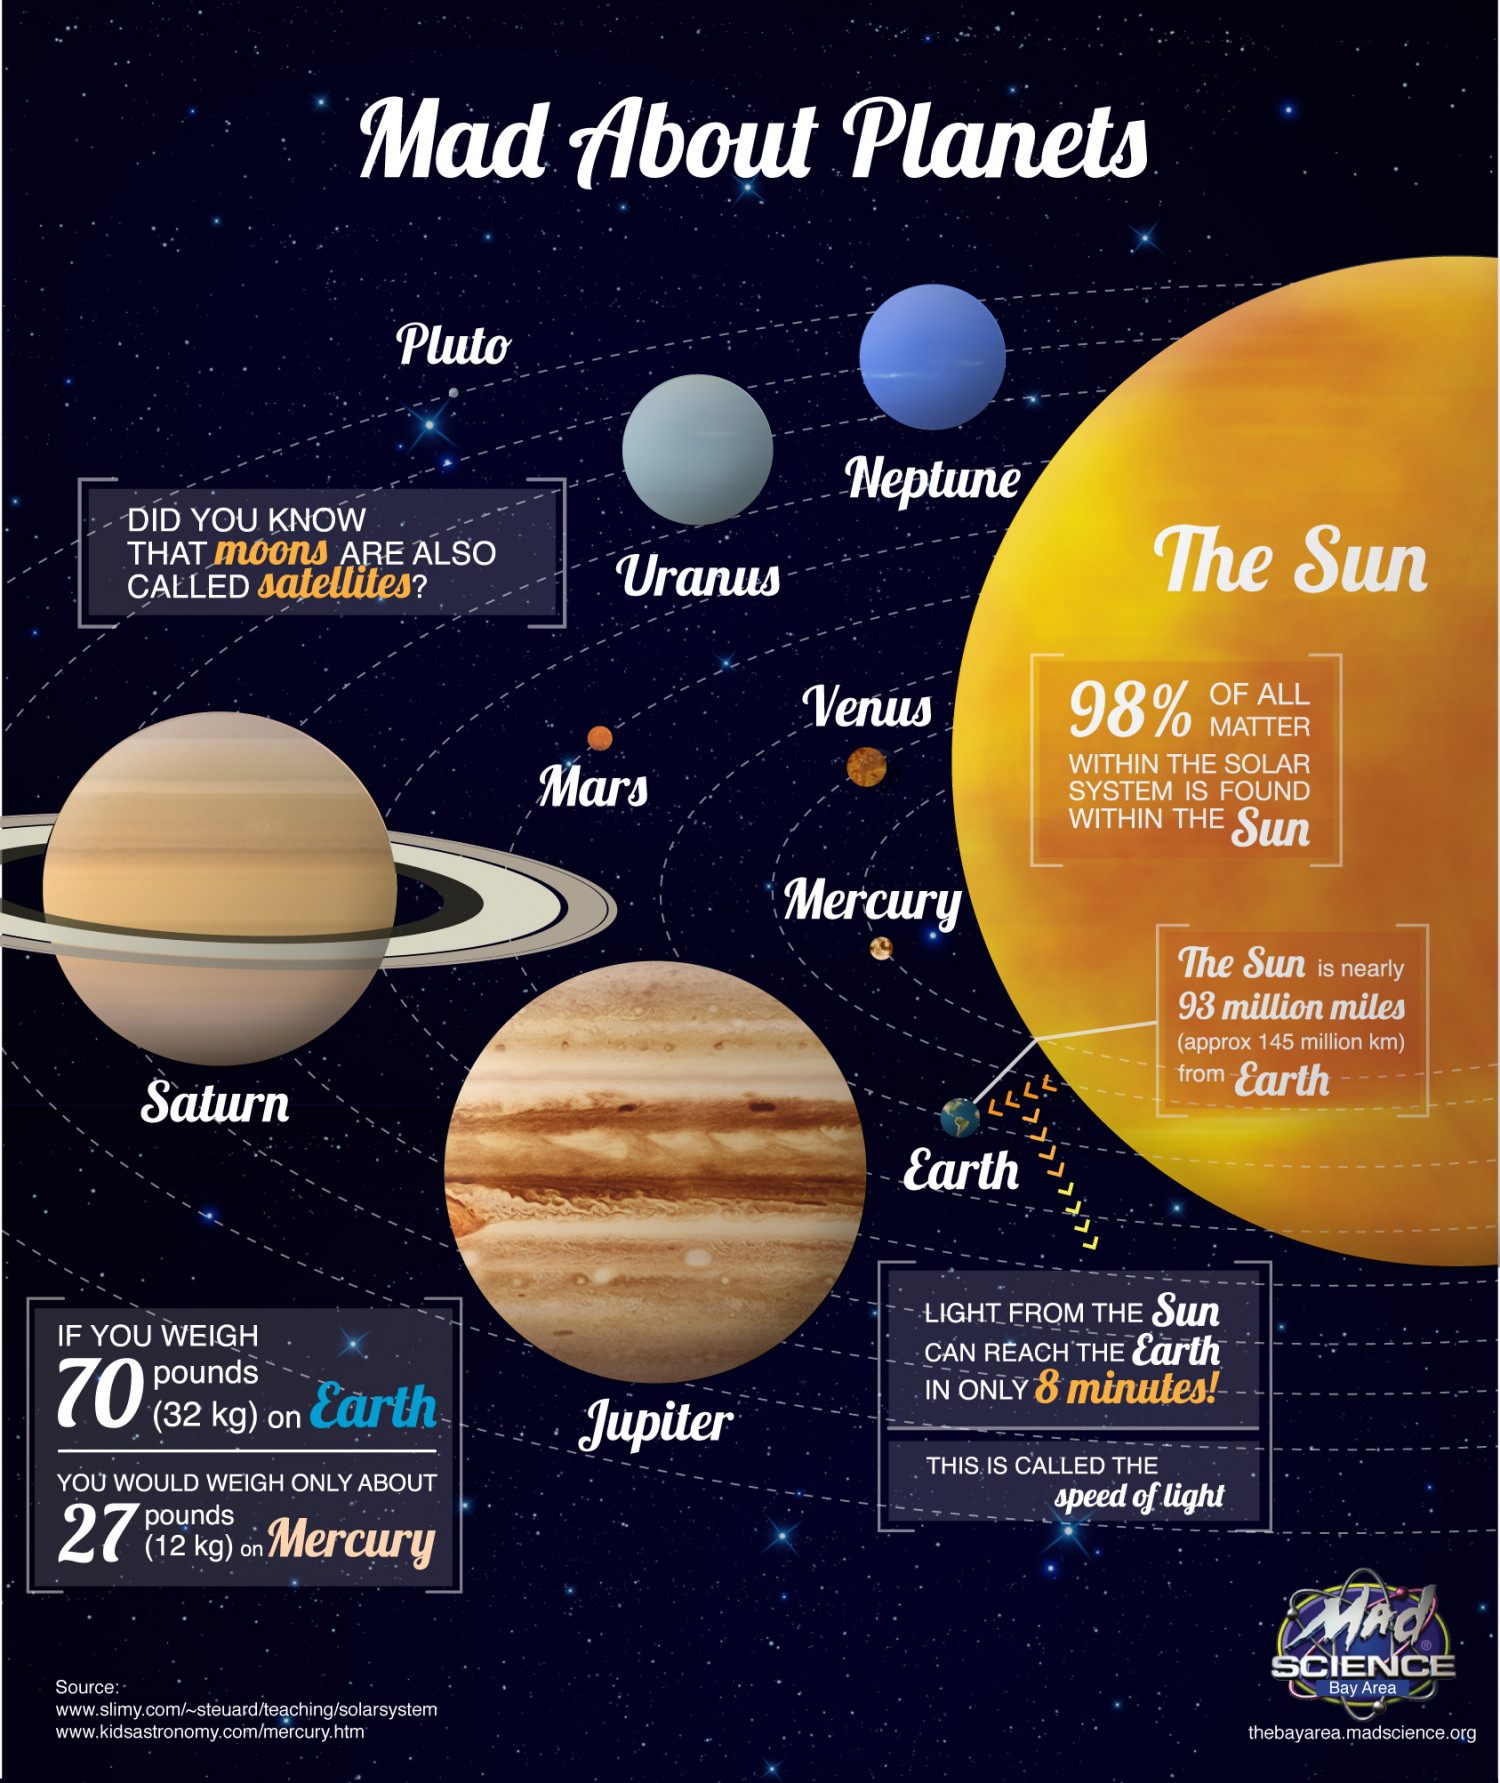 Mad About Planets